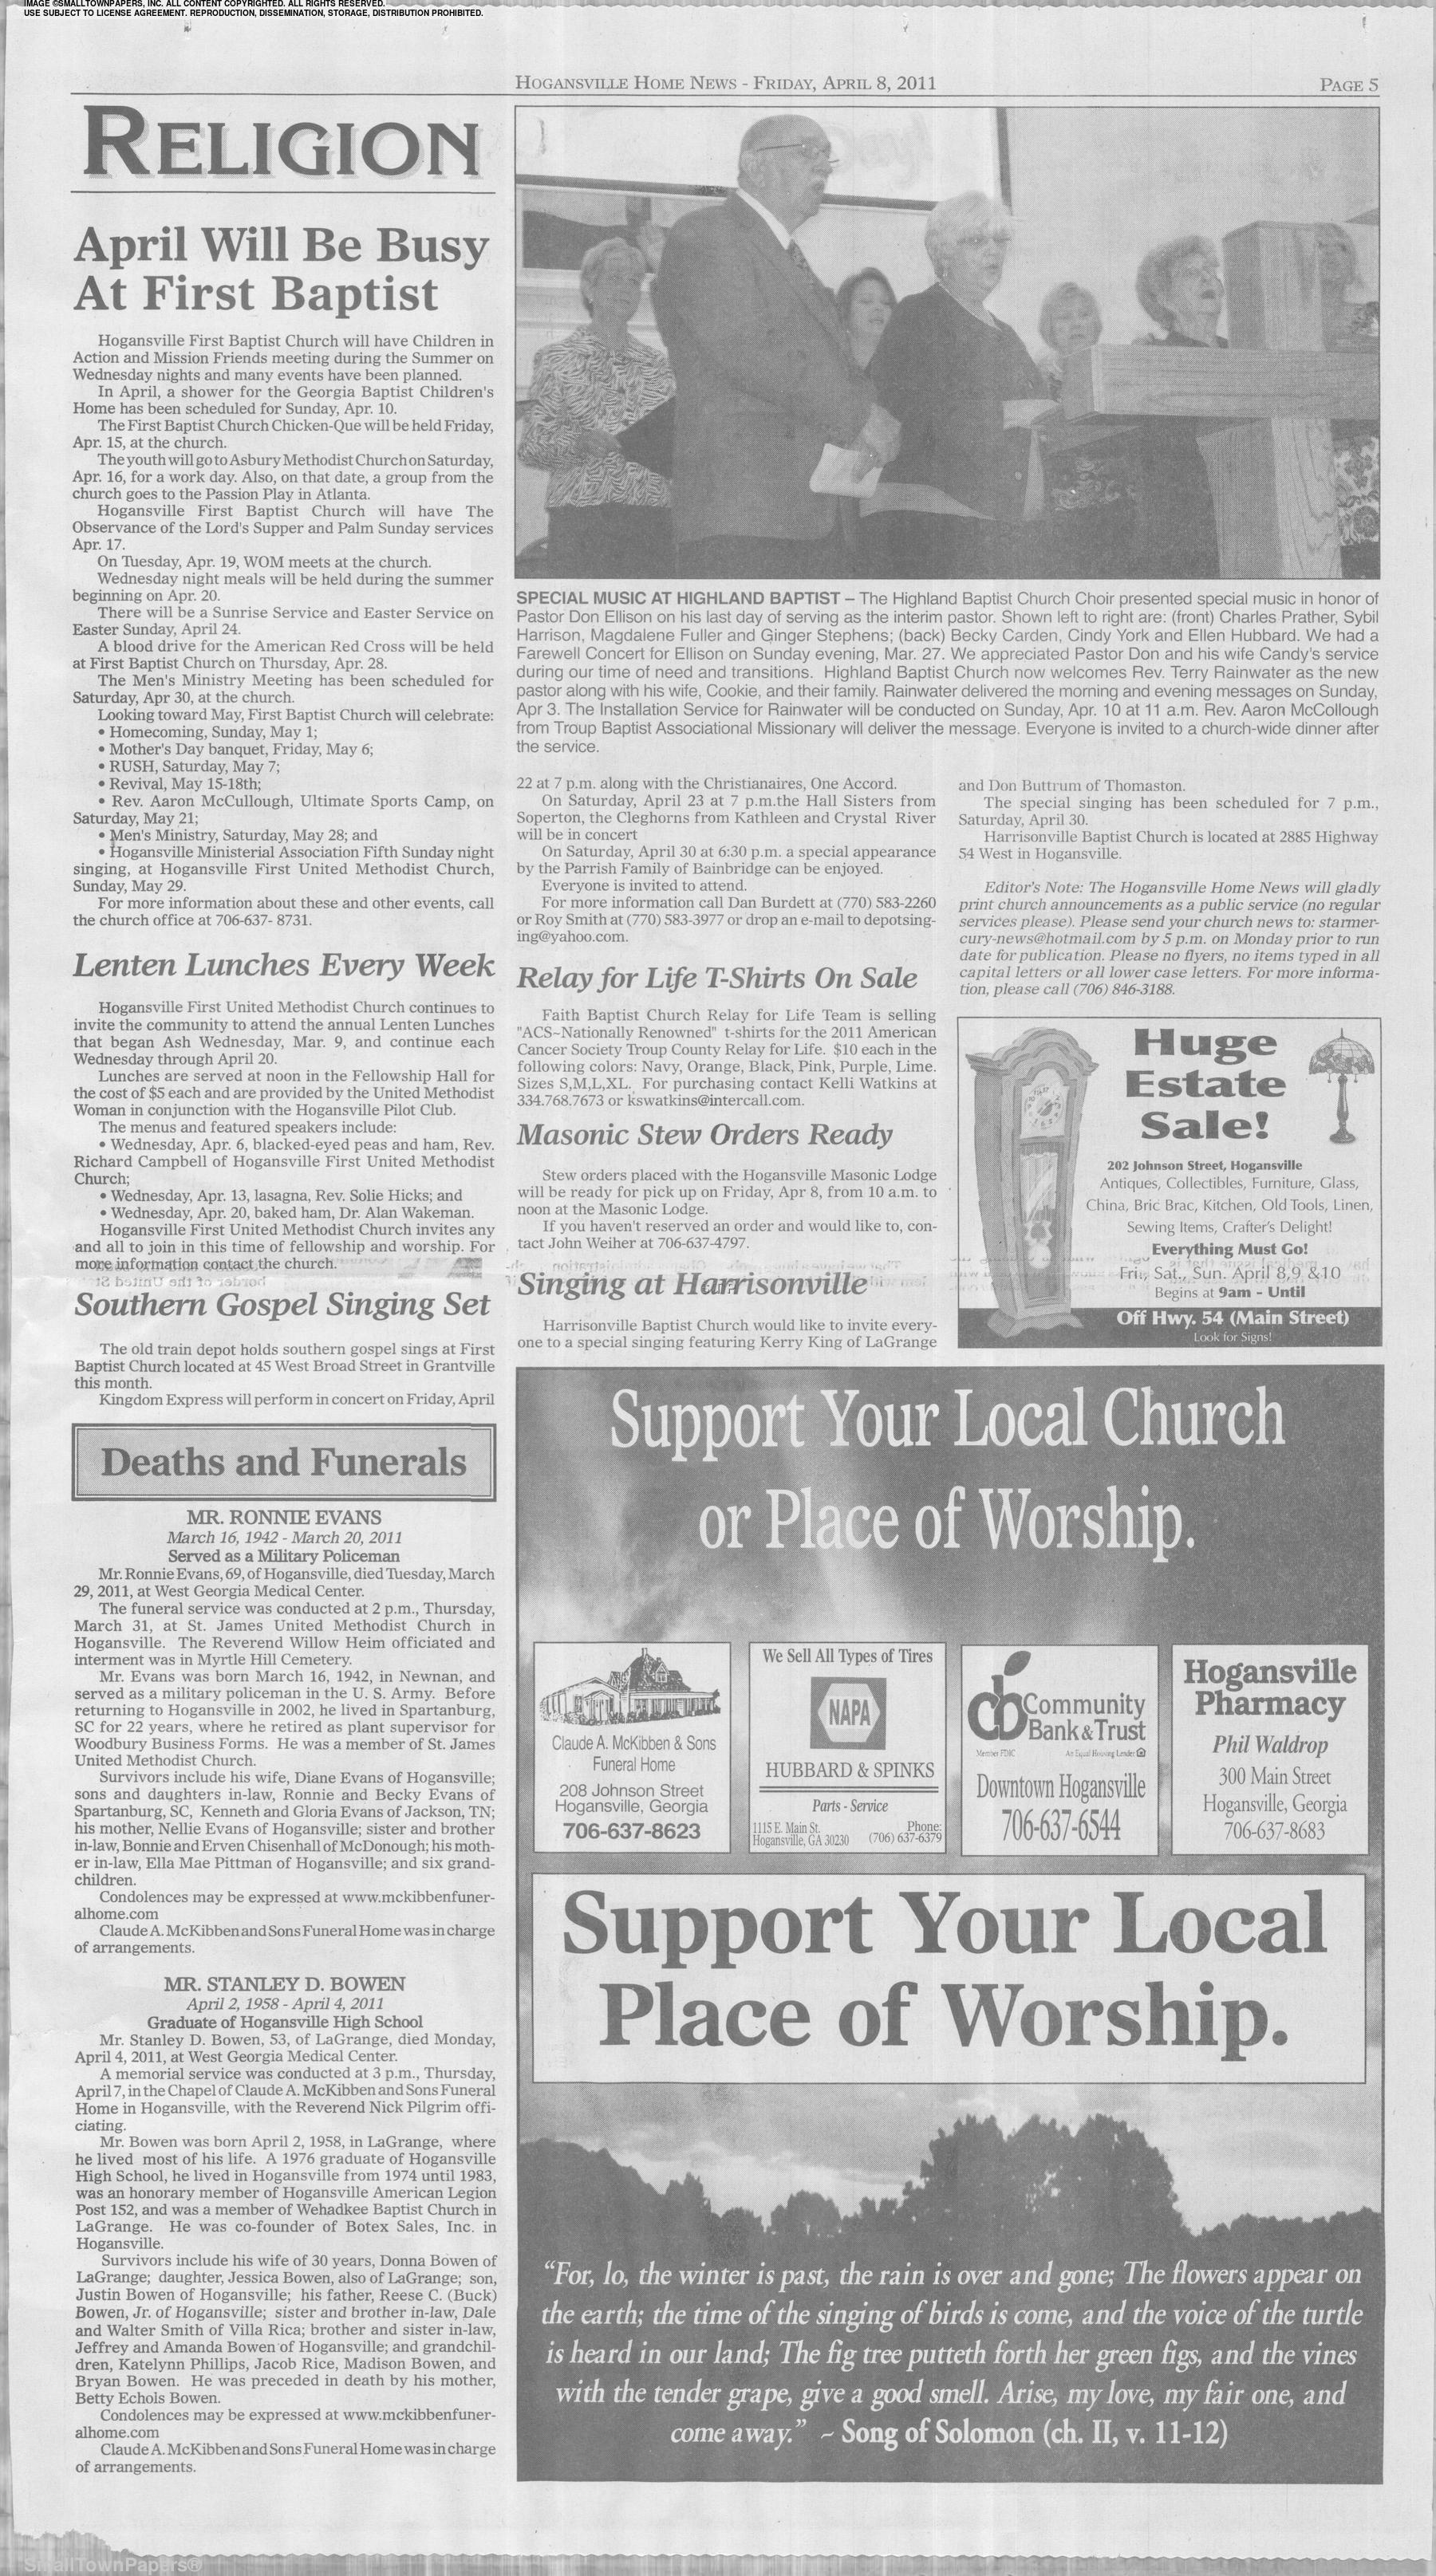 The Hogansville Herald April 8, 2011: Page 5